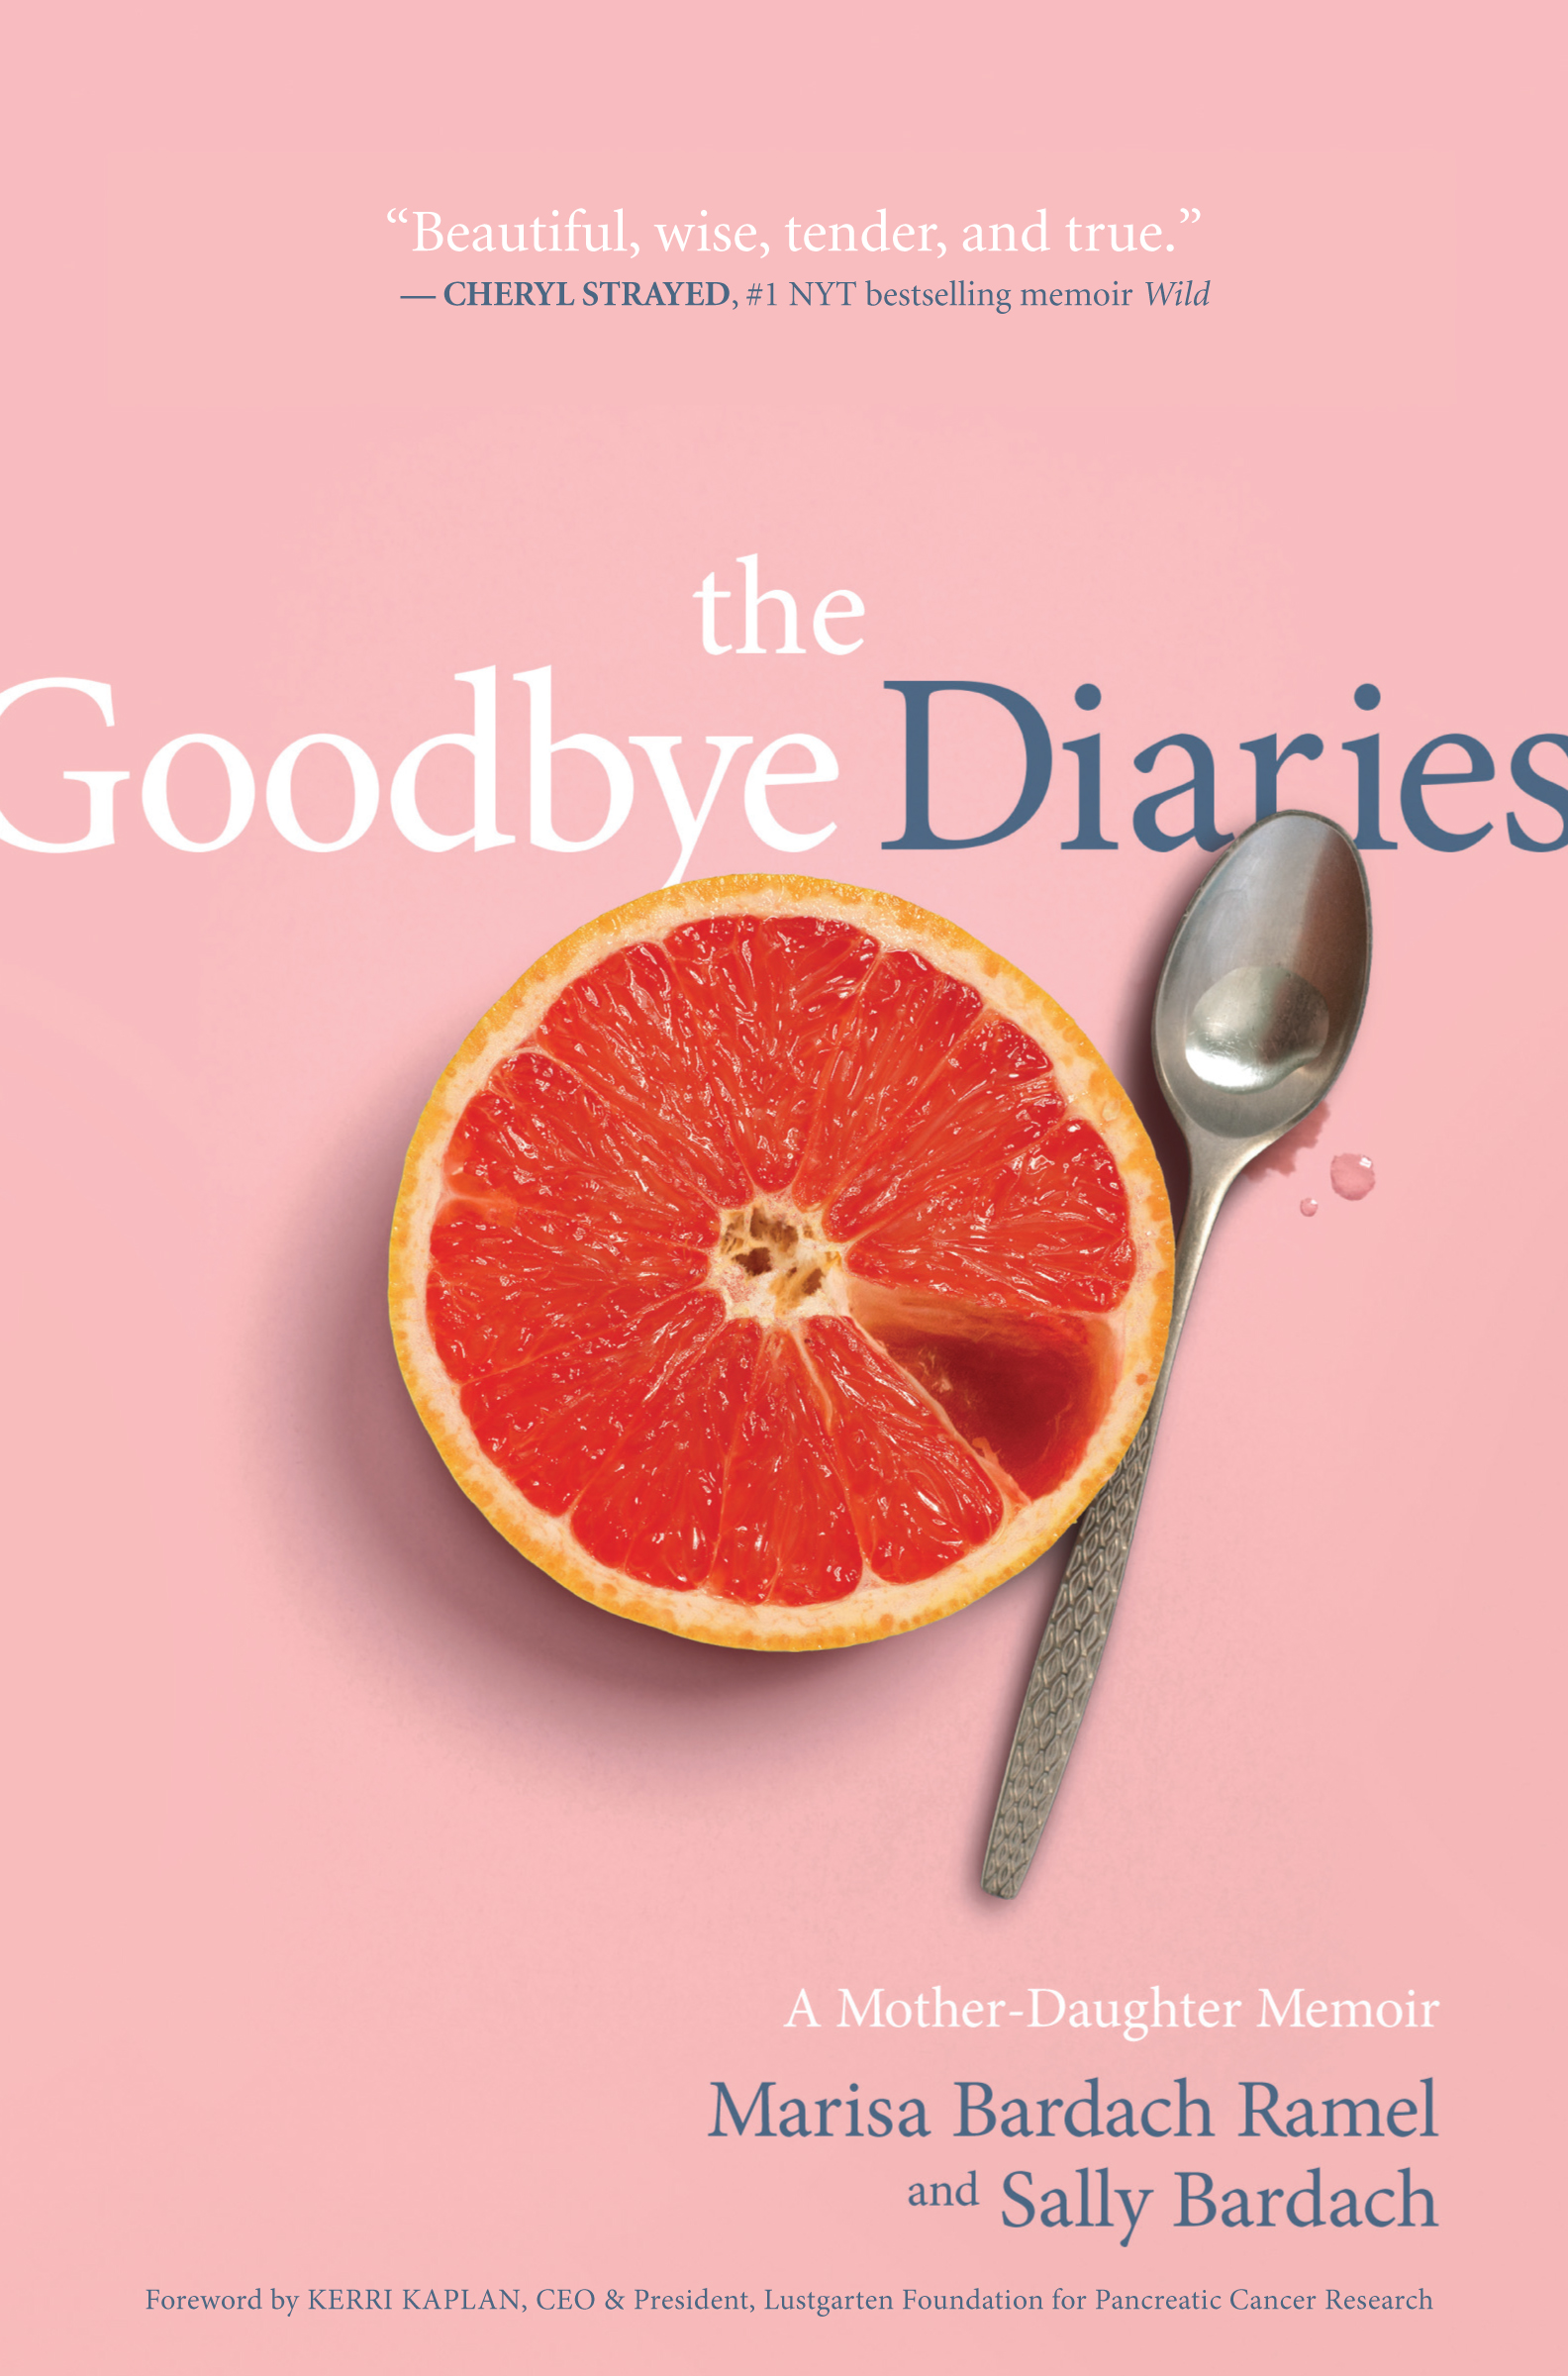 Book Launch: The Goodbye Diaries by Marisa Bardach Ramel and Sally Bardach